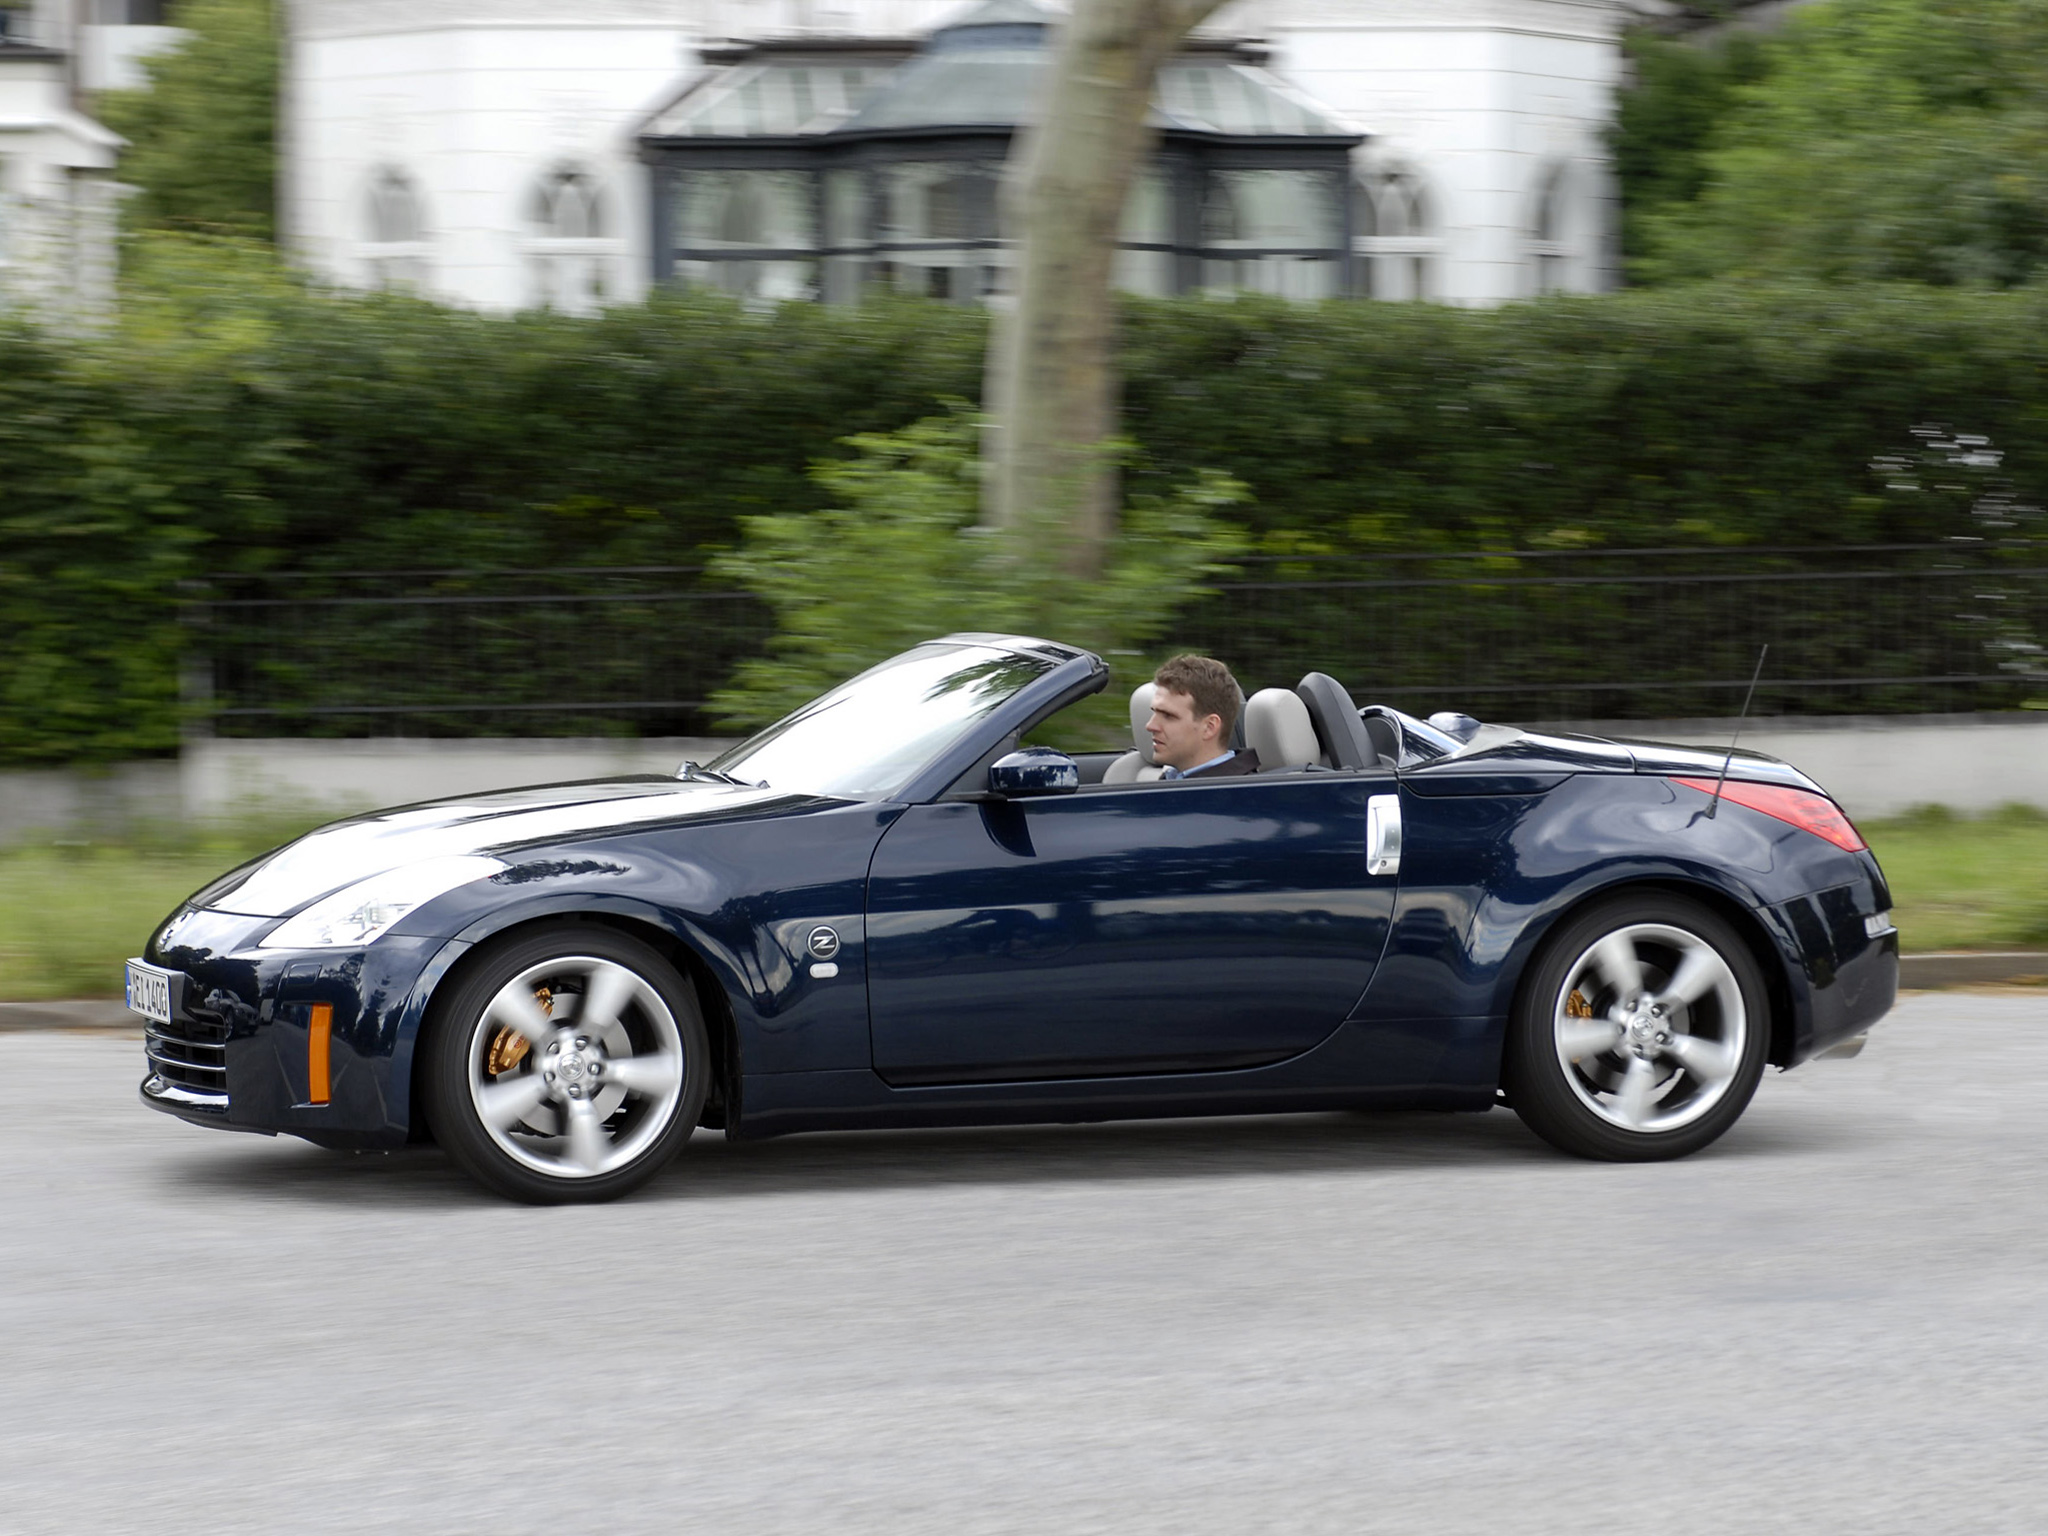 Nissan 350z Roadster Photos Photogallery With 47 Pics